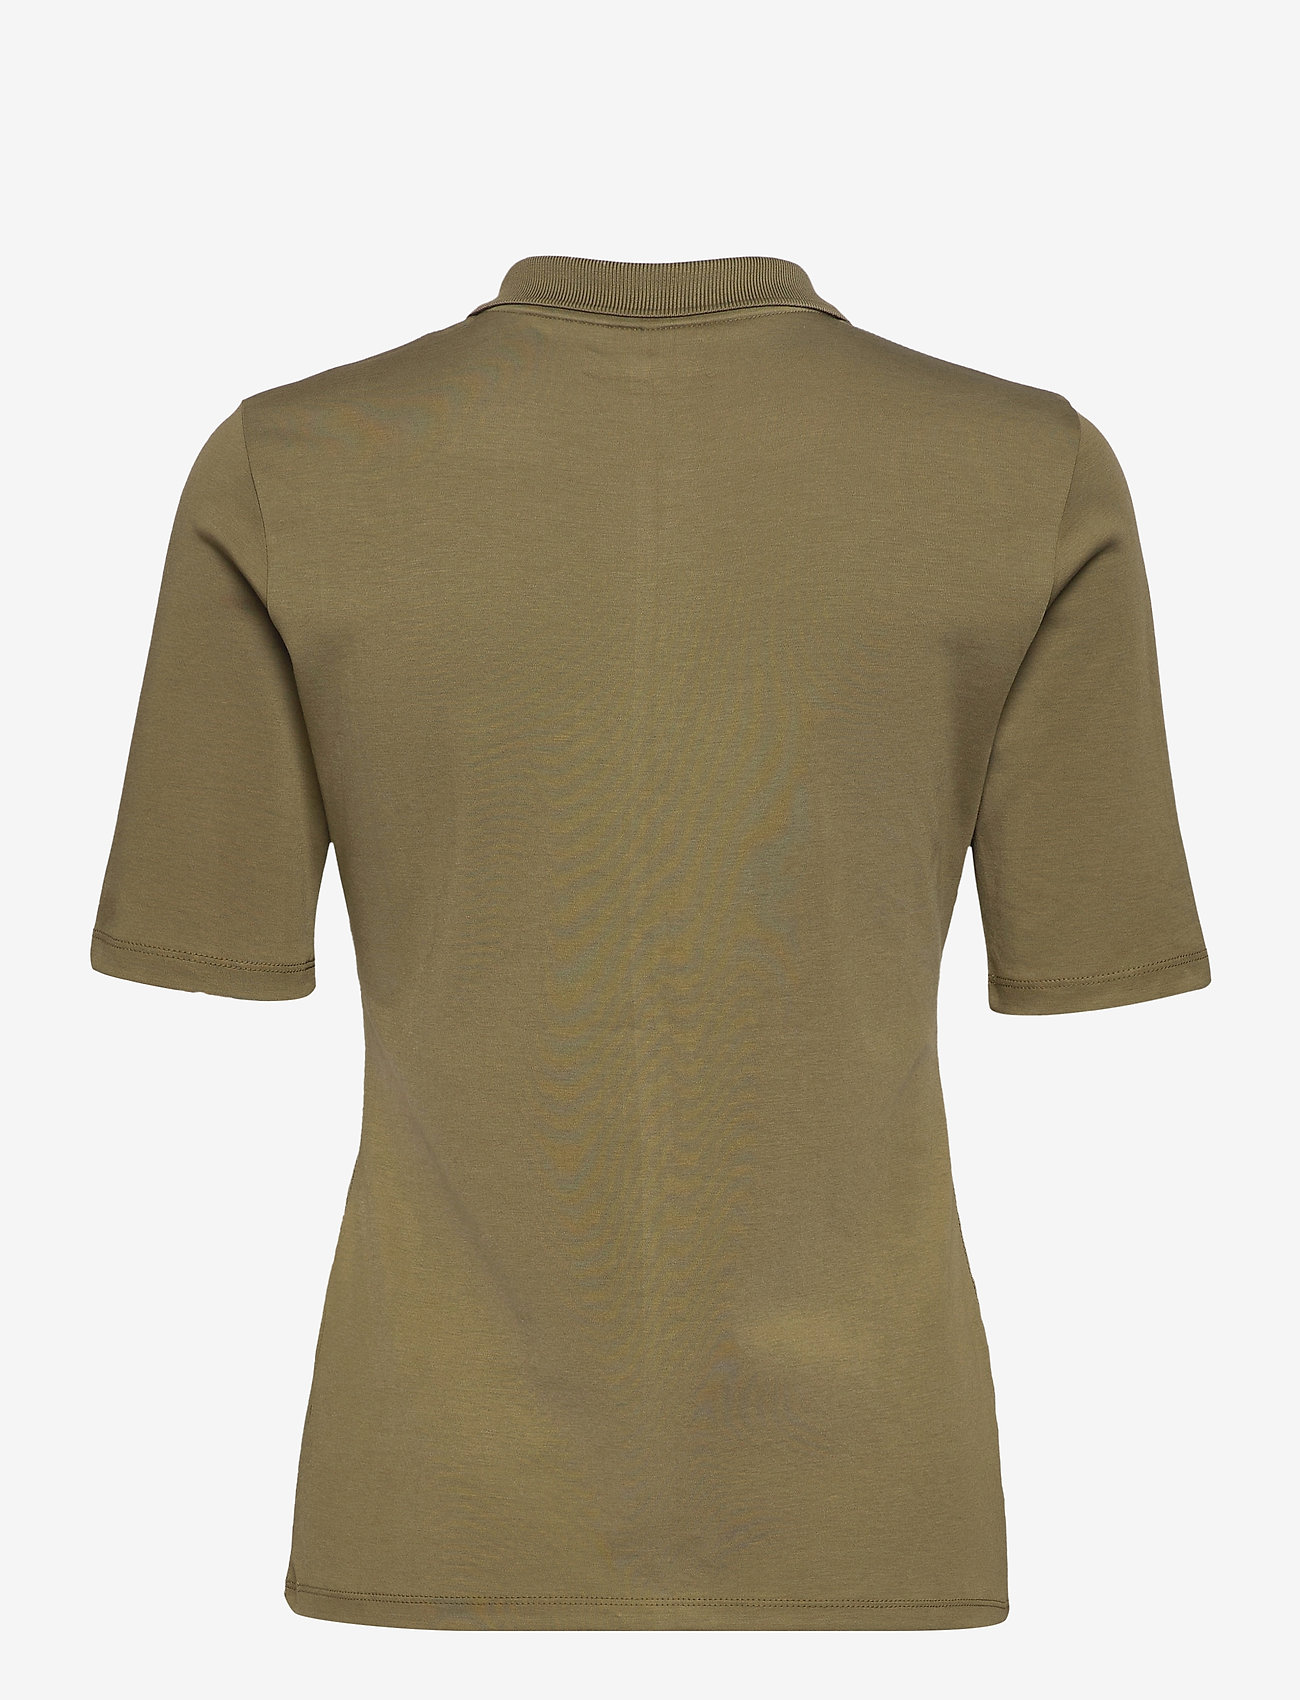 Gerry Weber Edition - POLO SHIRT 3/4 SLEEV - polohemden - light khaki - 1